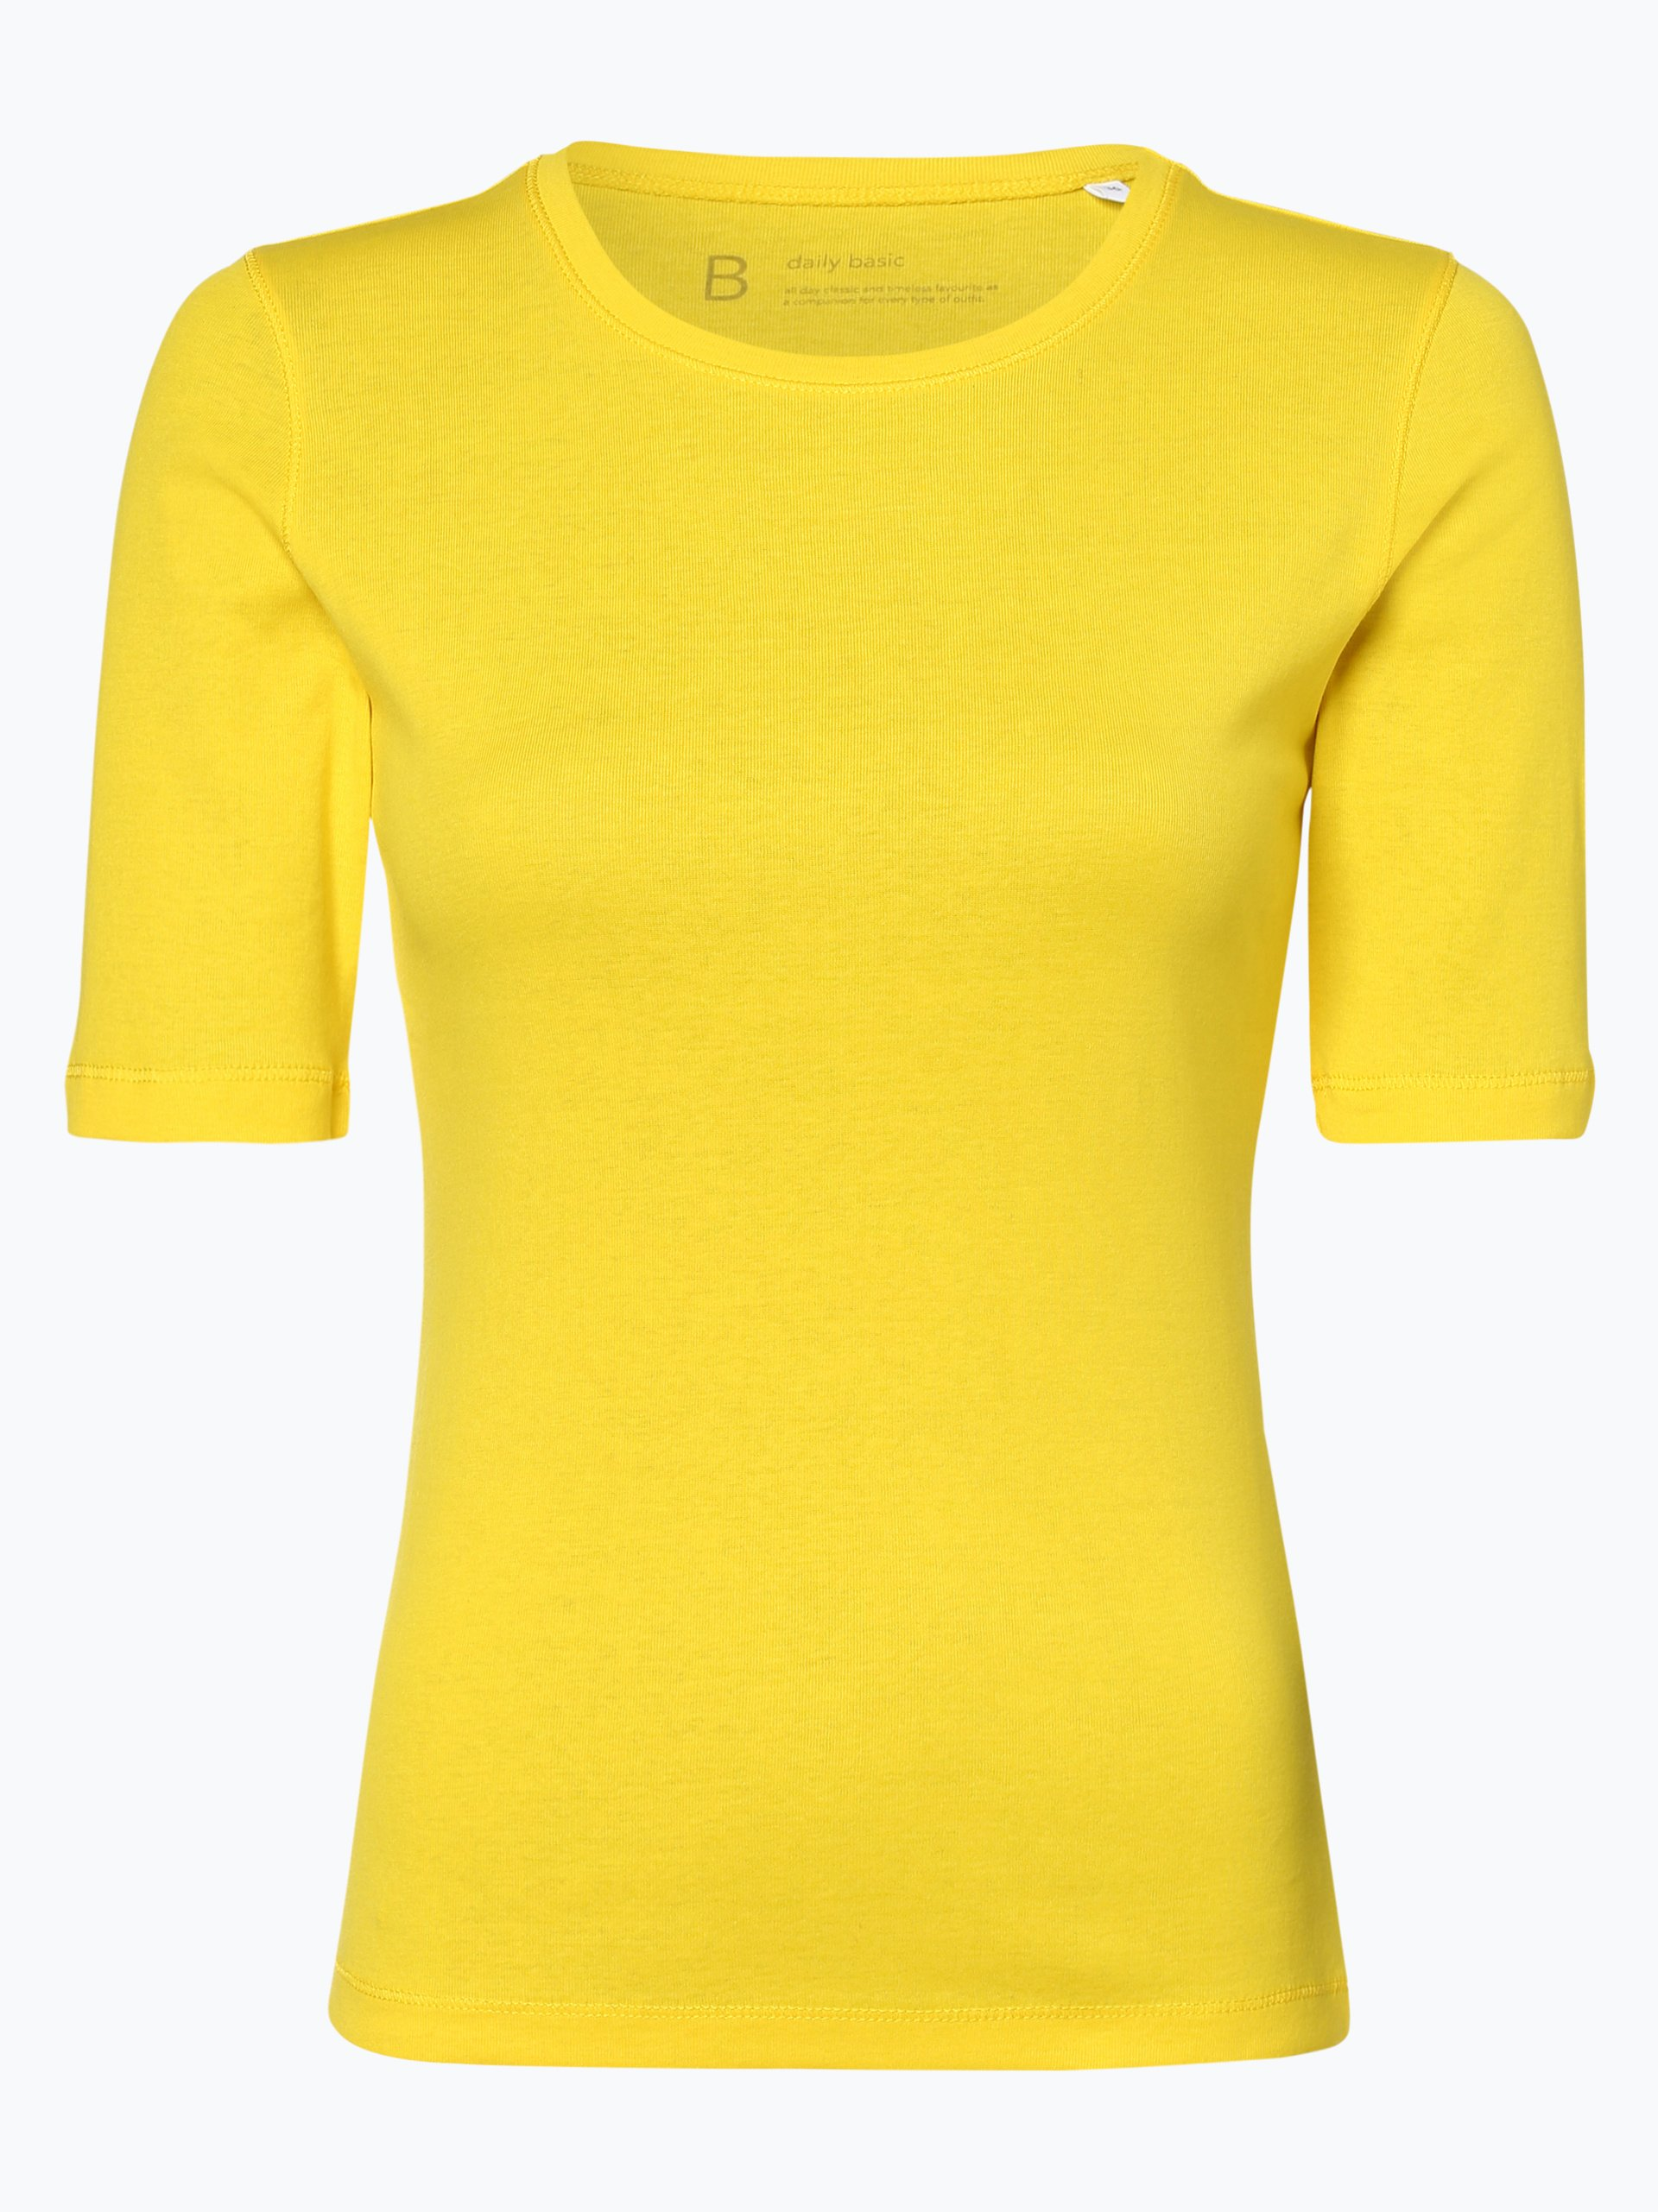 Opus Damen T-Shirt - Daily B